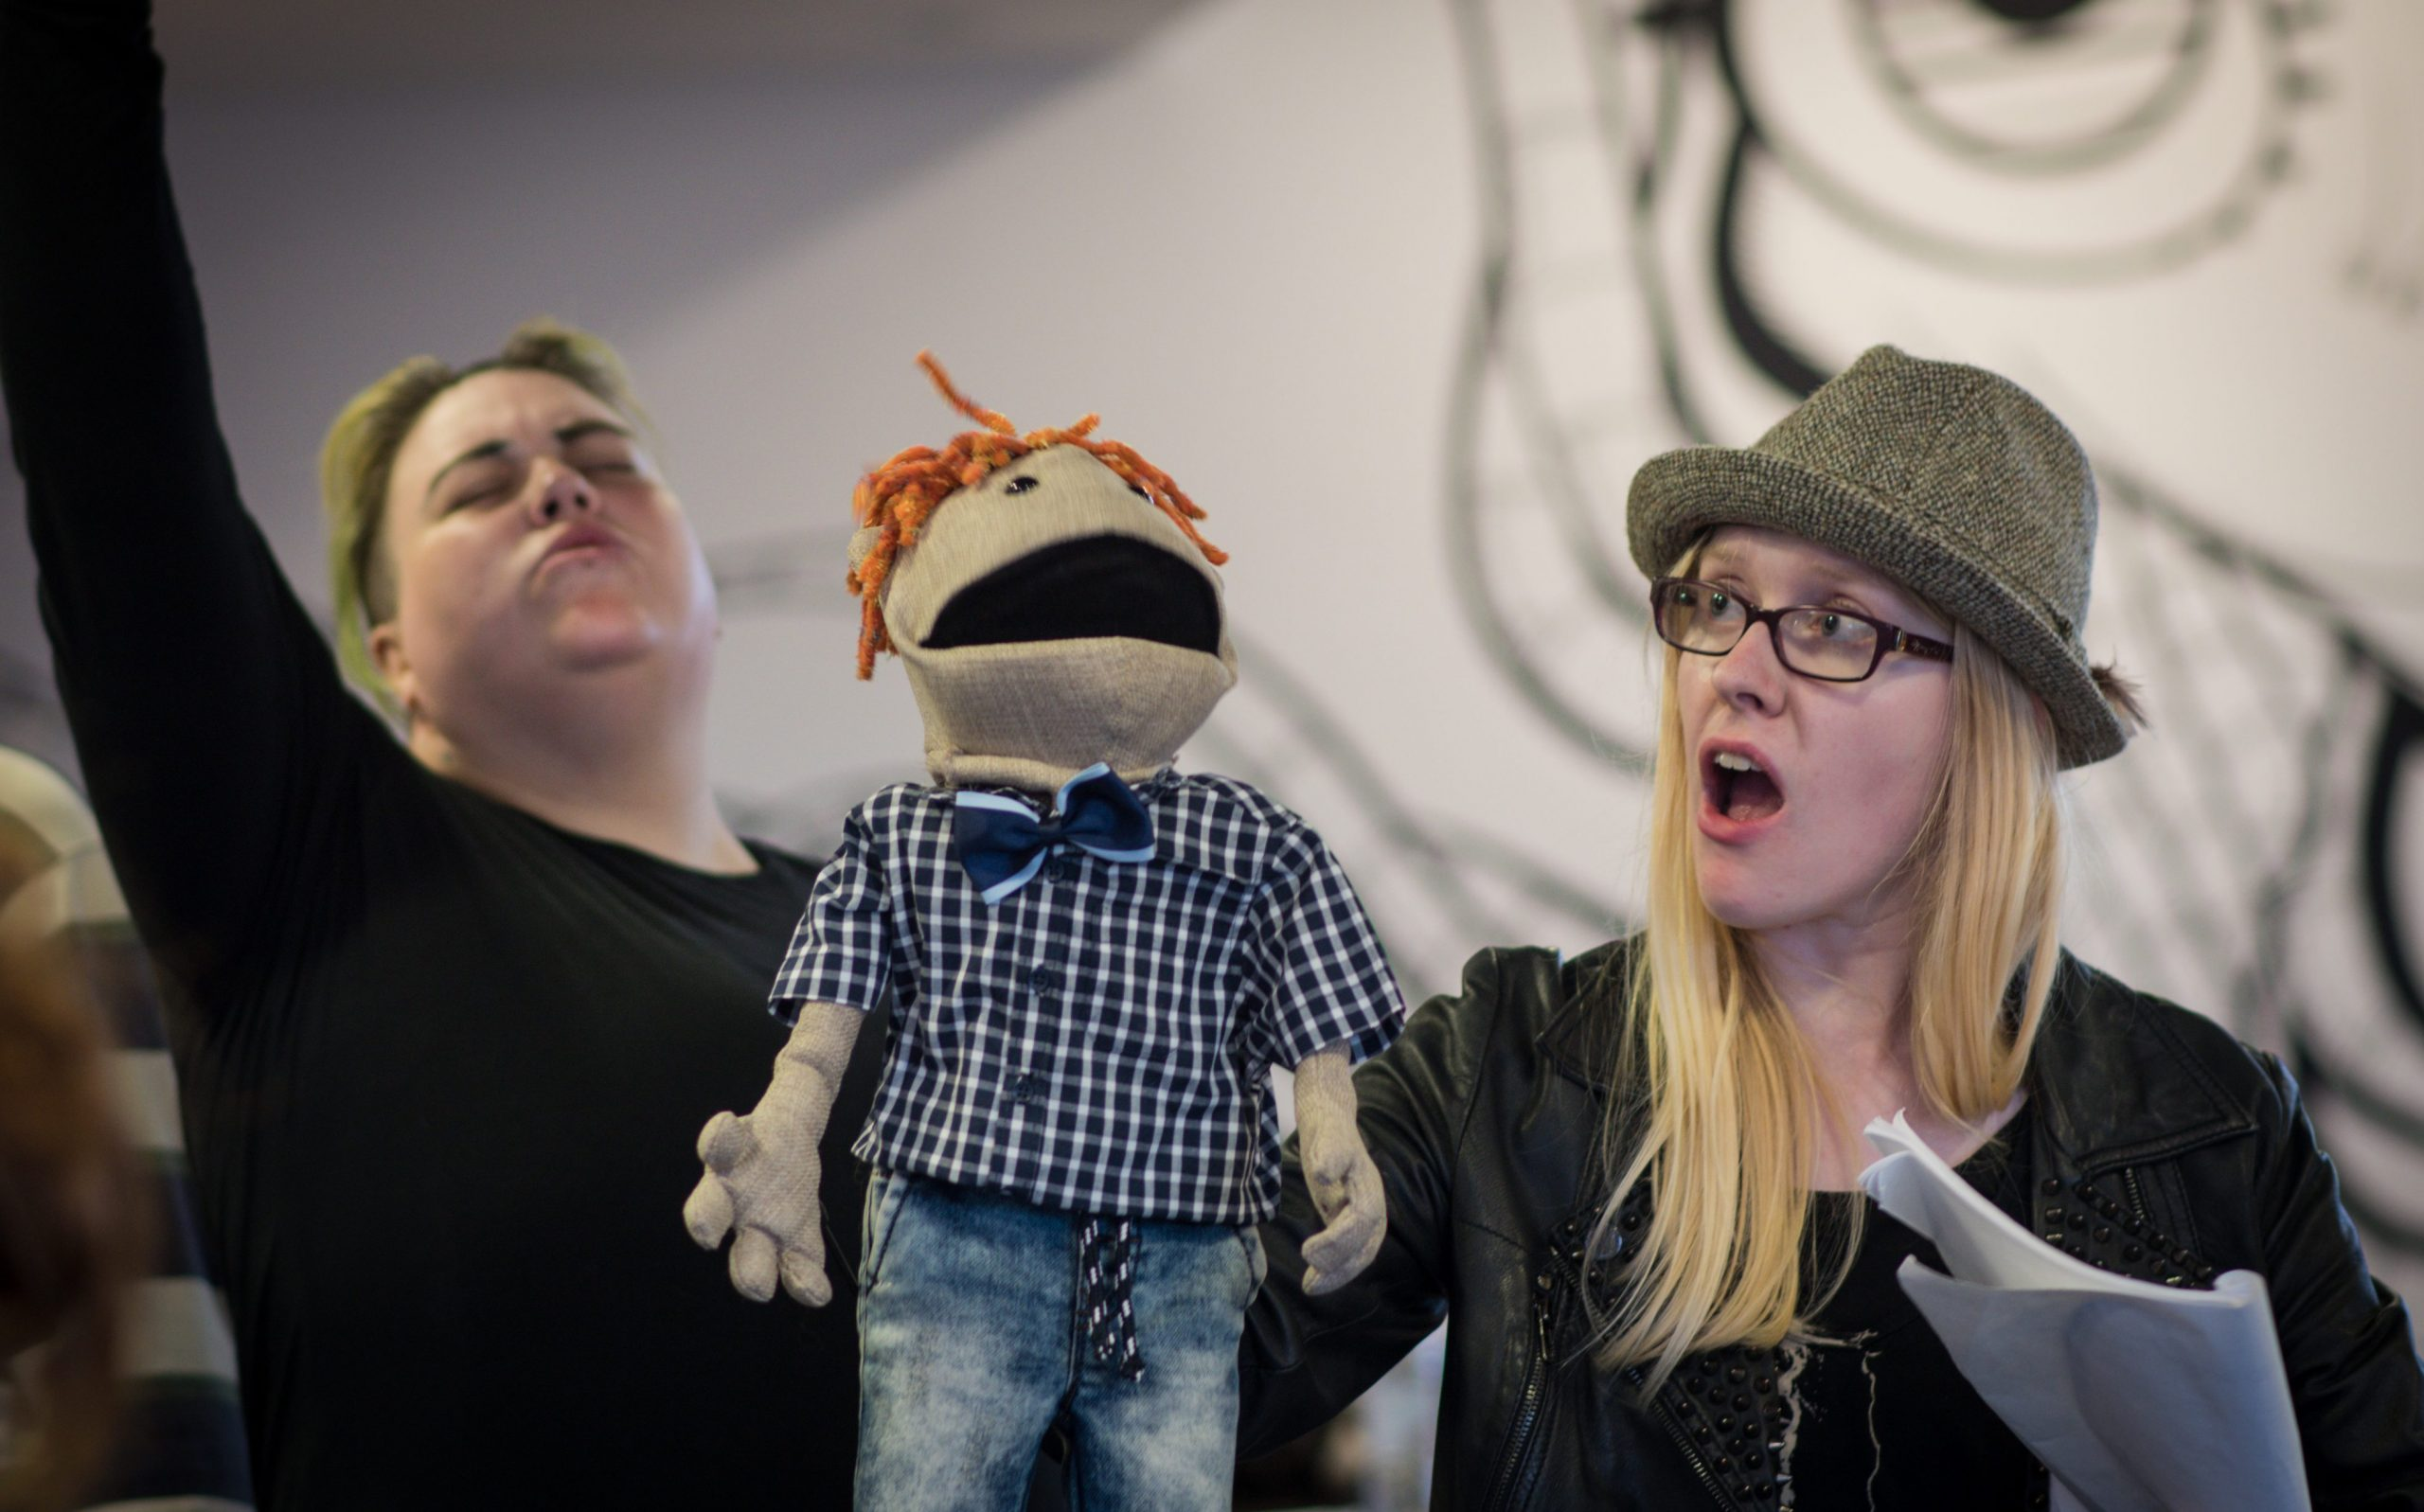 Two people performing with a ginger haired puppet